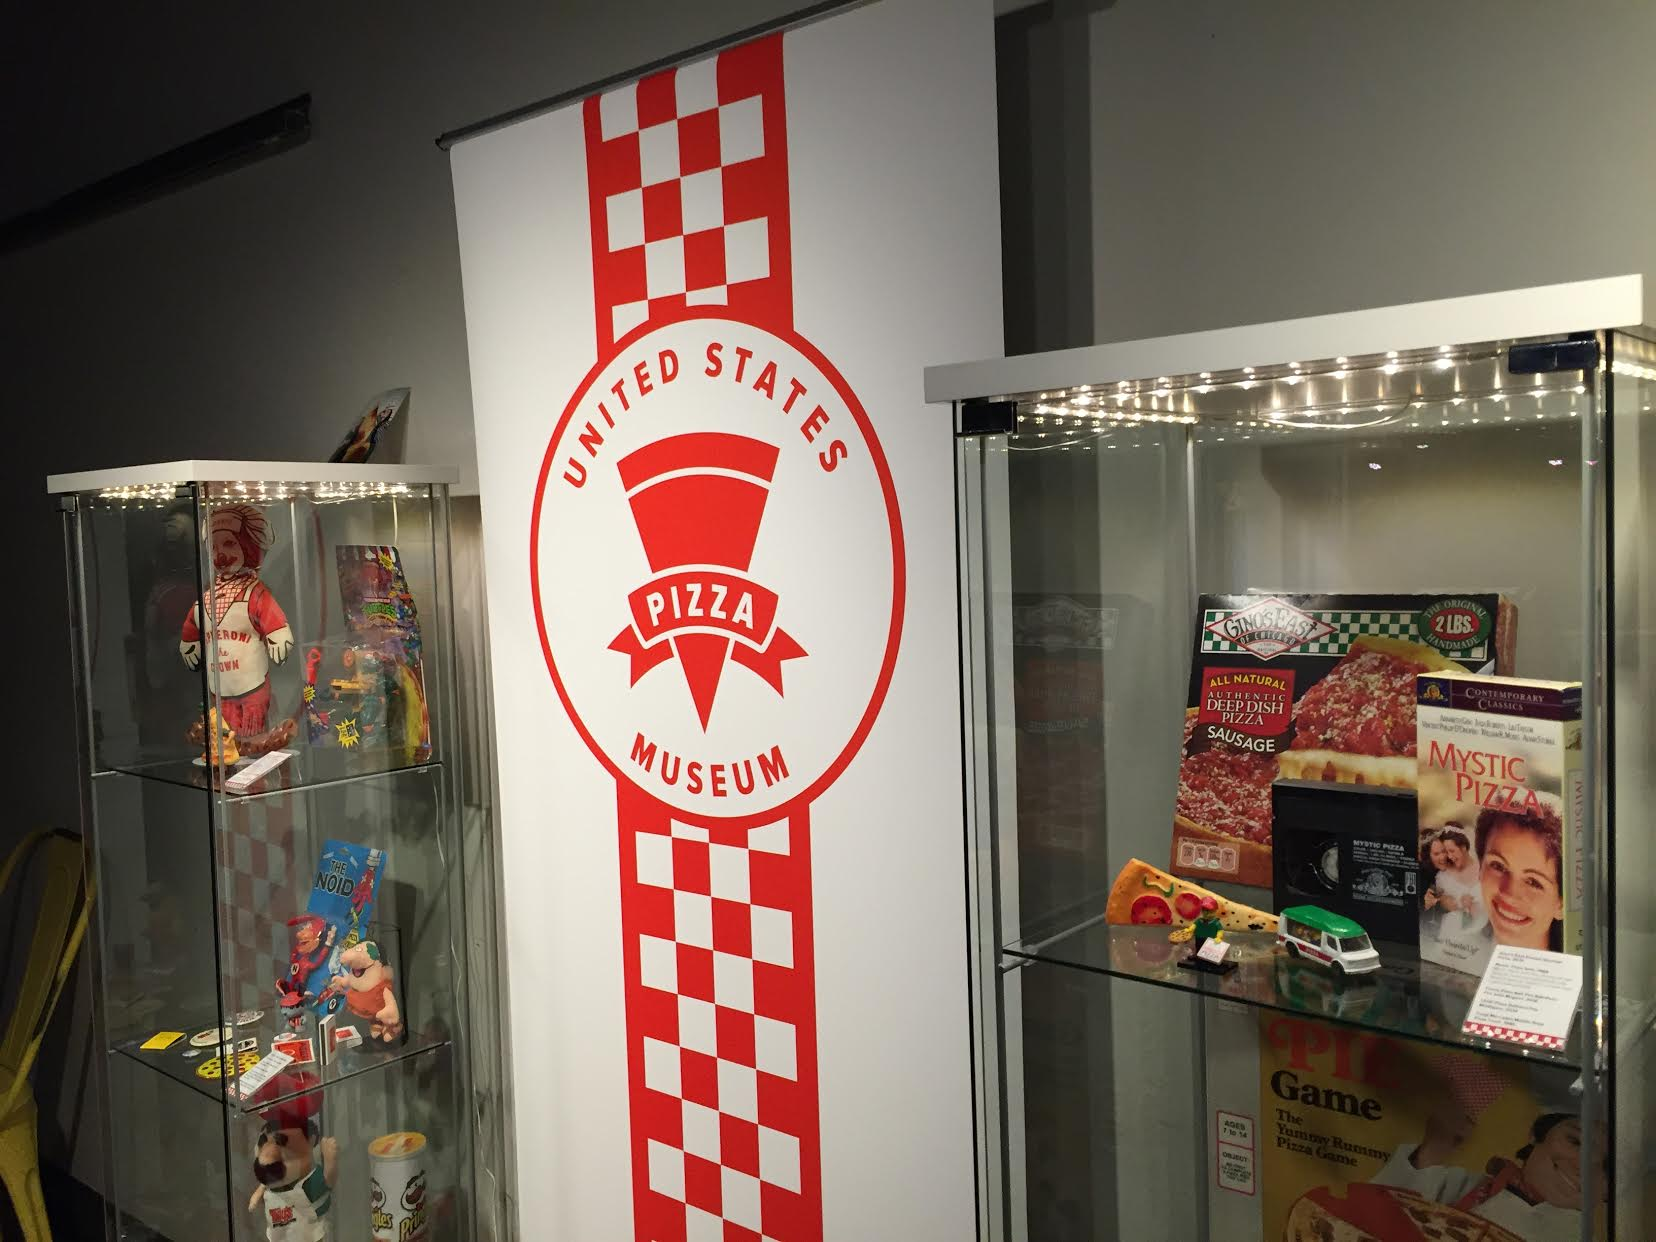 The U.S. Pizza Museum brought a pop-up exhibit. No preheating required.